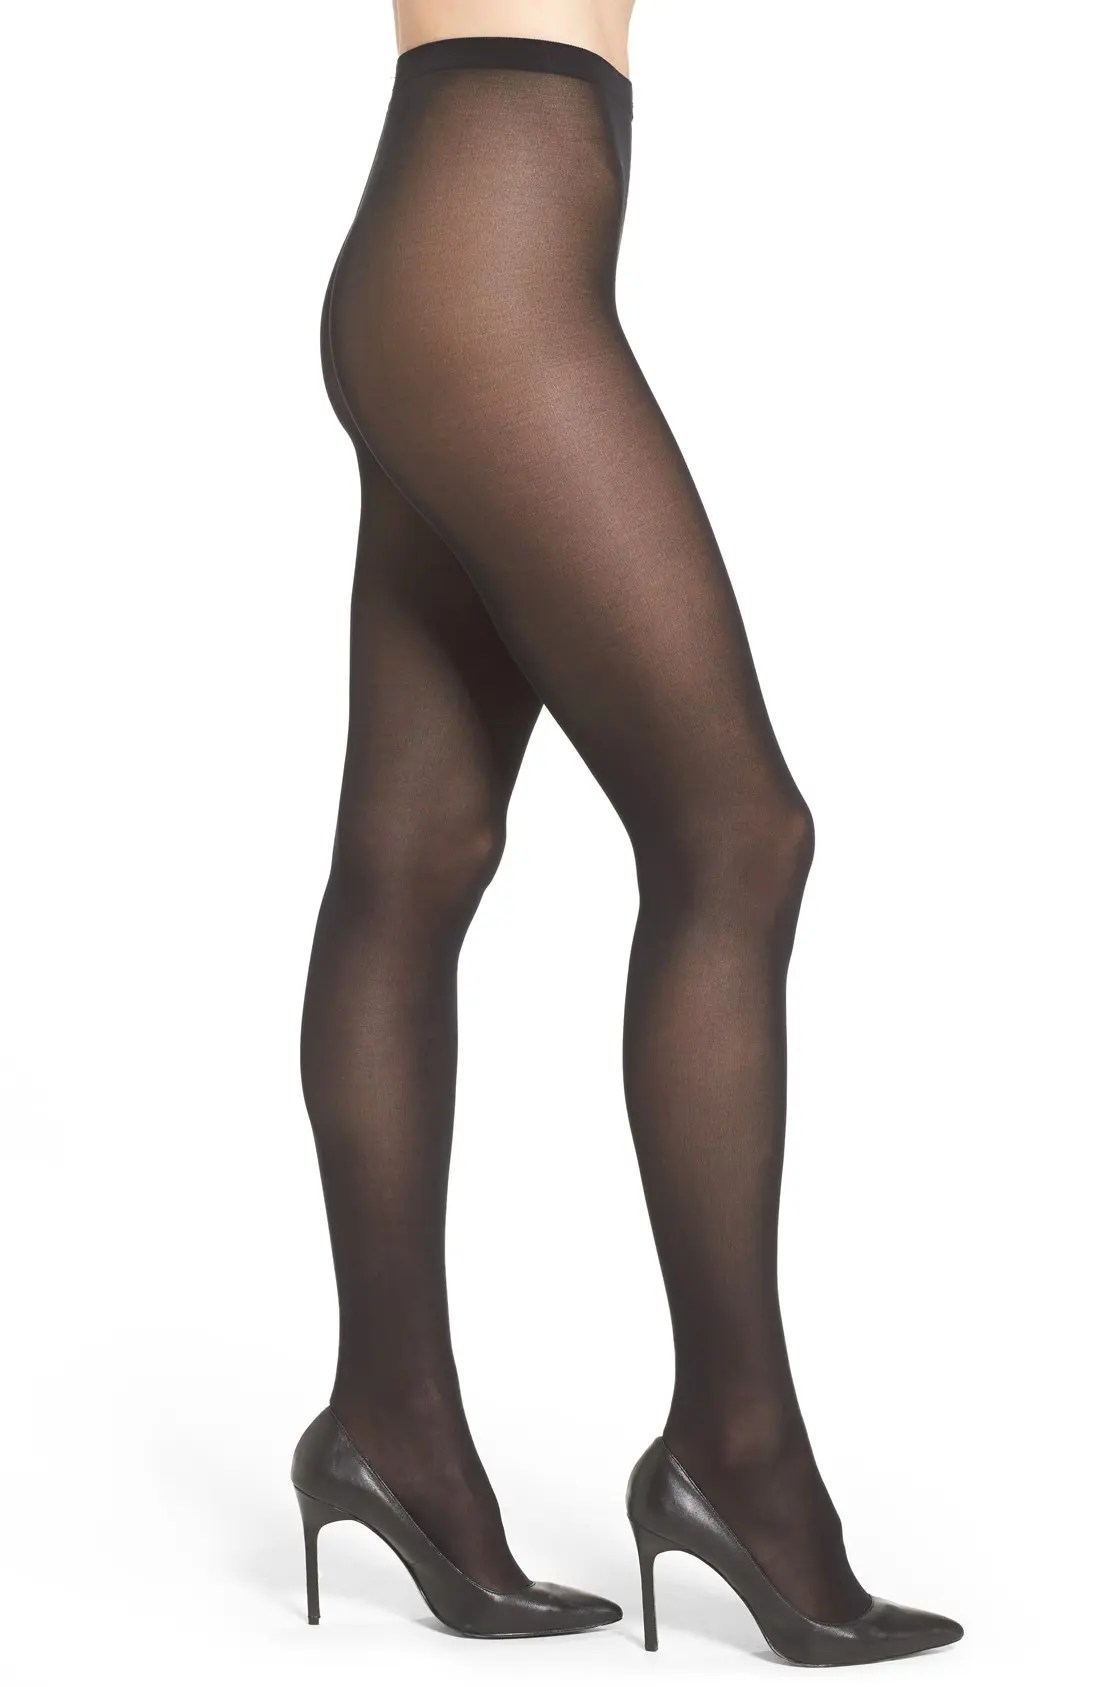 Wolford  velvet de luxe semi opaque tights also women  leggings nordstrom rh shoprdstrom